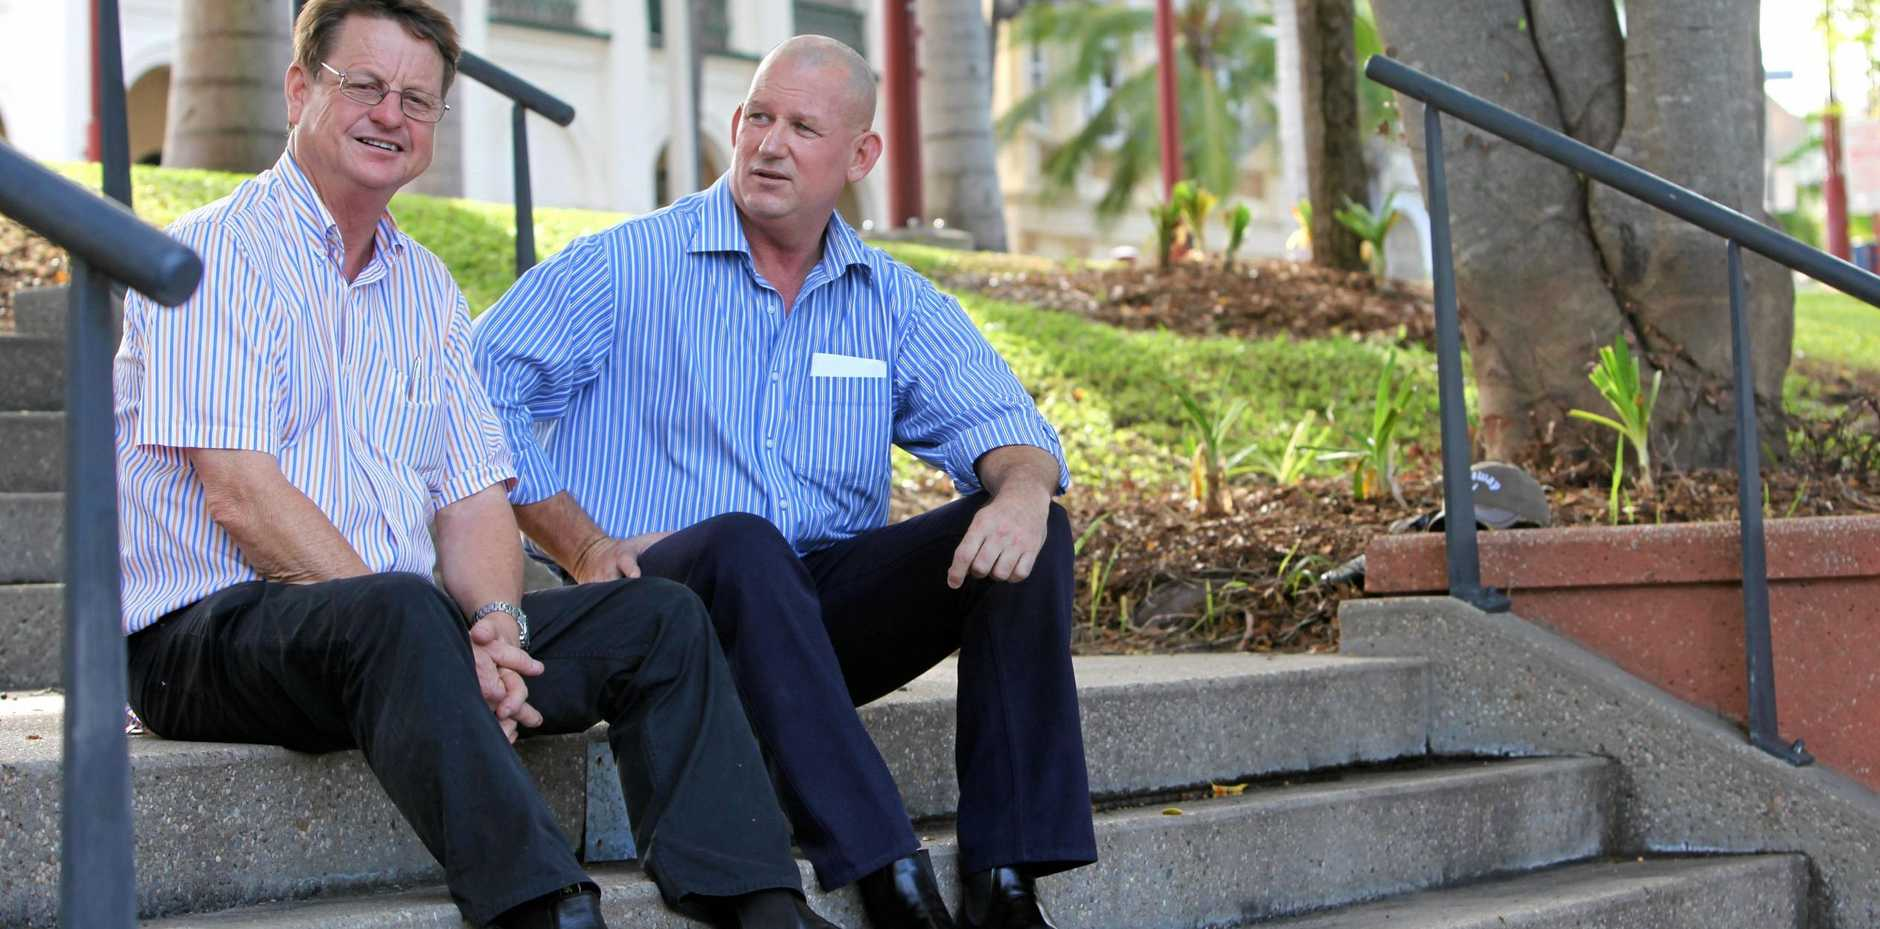 FLASH BACK: Robert Schwarten and Bill Byrne back in 2011 before Mr Byrne won the seat of Rockhampton at the 2012 election after Mr Schwarten had retired.